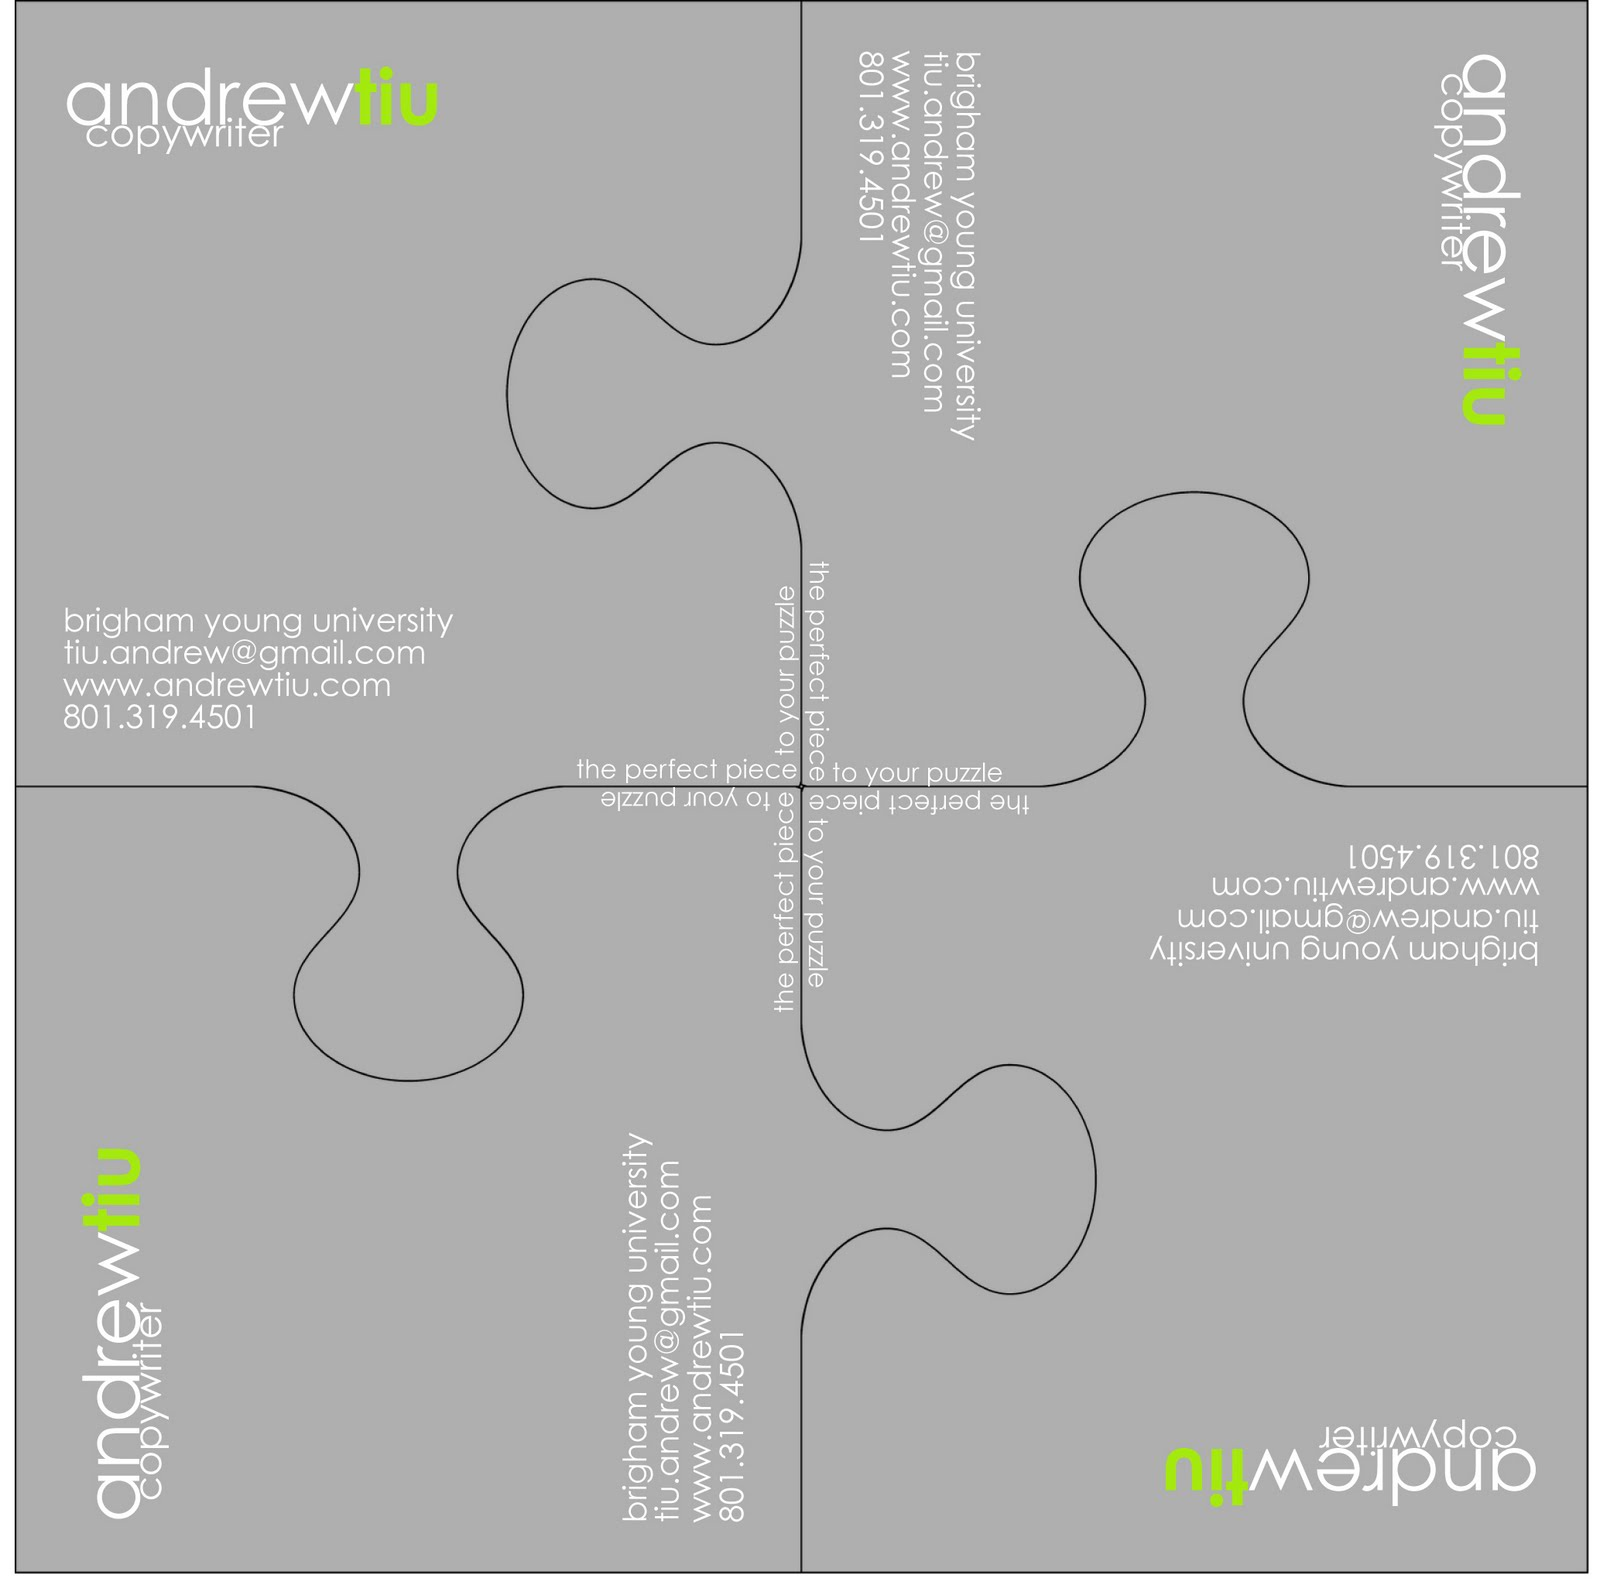 Puzzle piece business cards oxynux the viz andrew tiu business card colourmoves